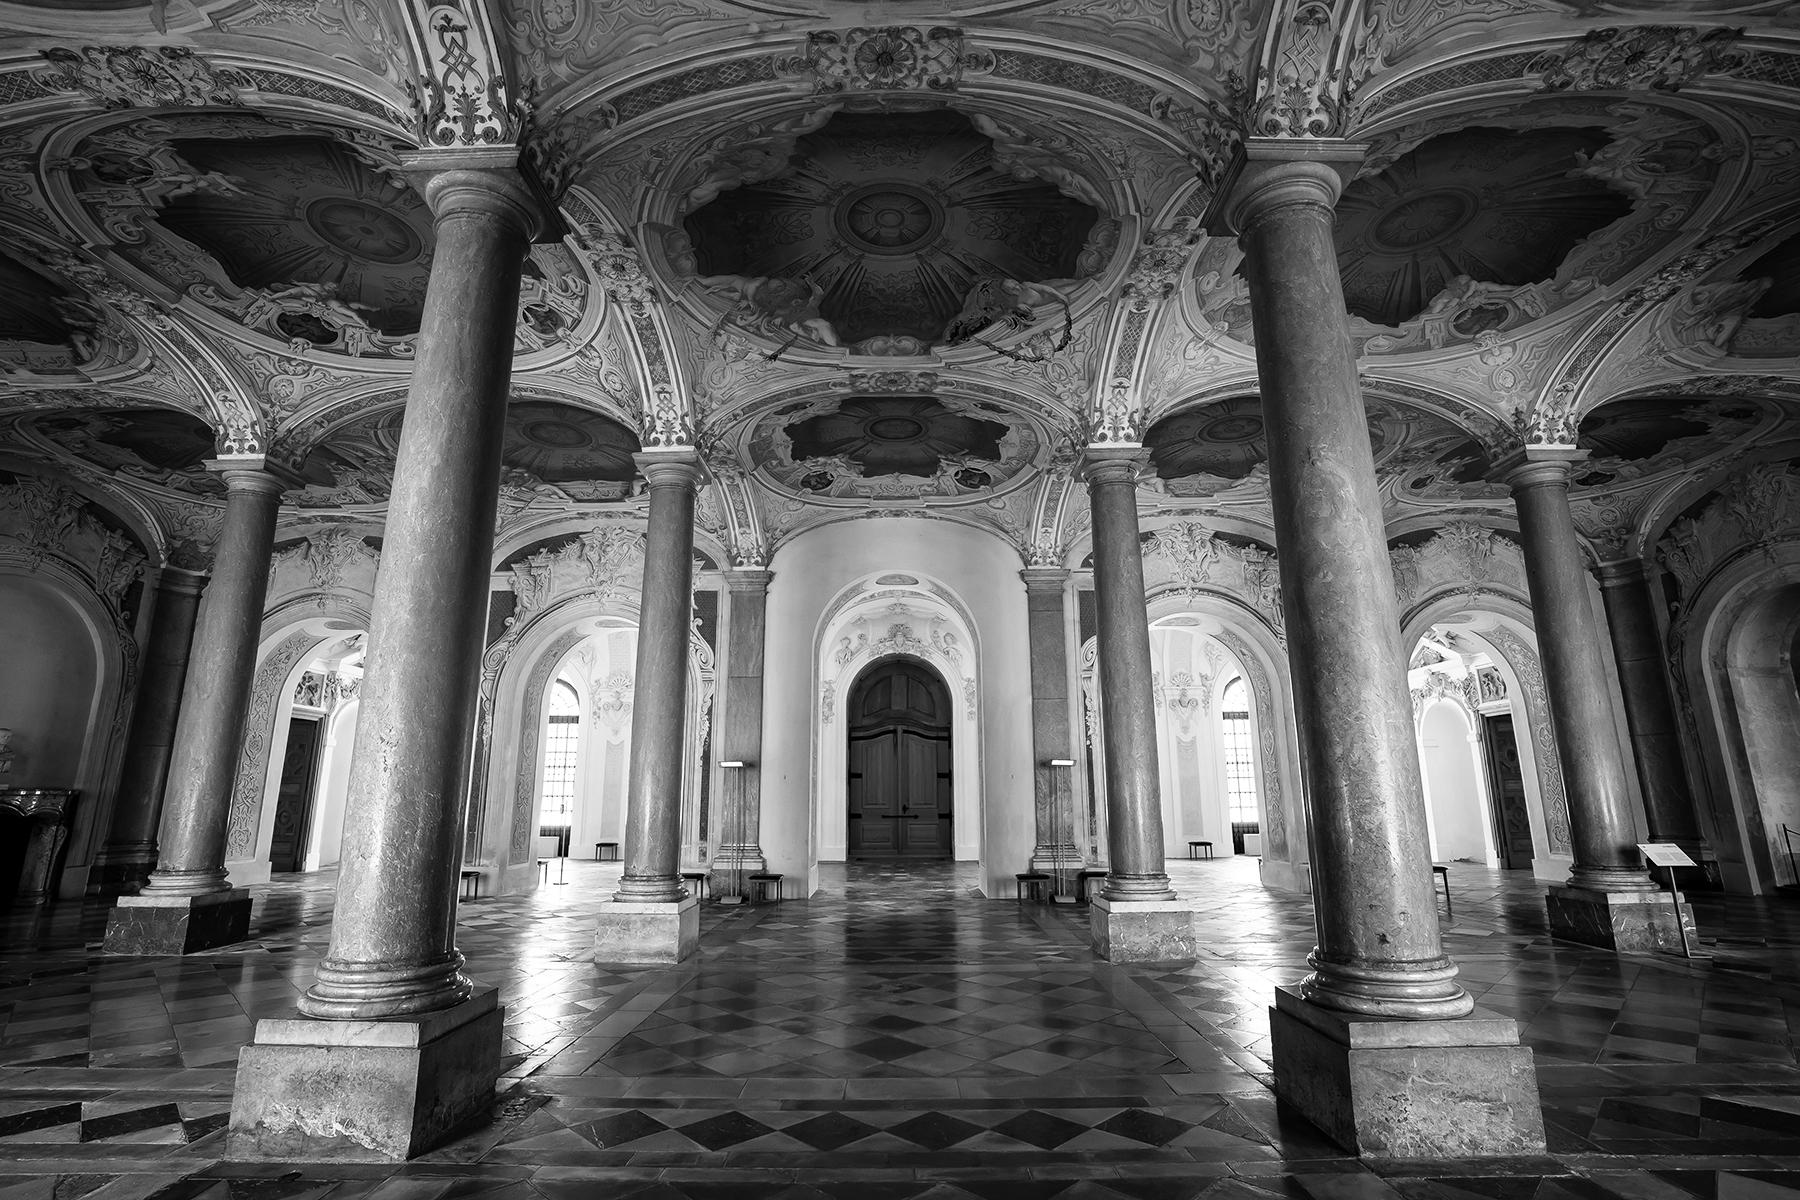 Shadowplay by Moritz Hormel contemporary photography of a palace interior